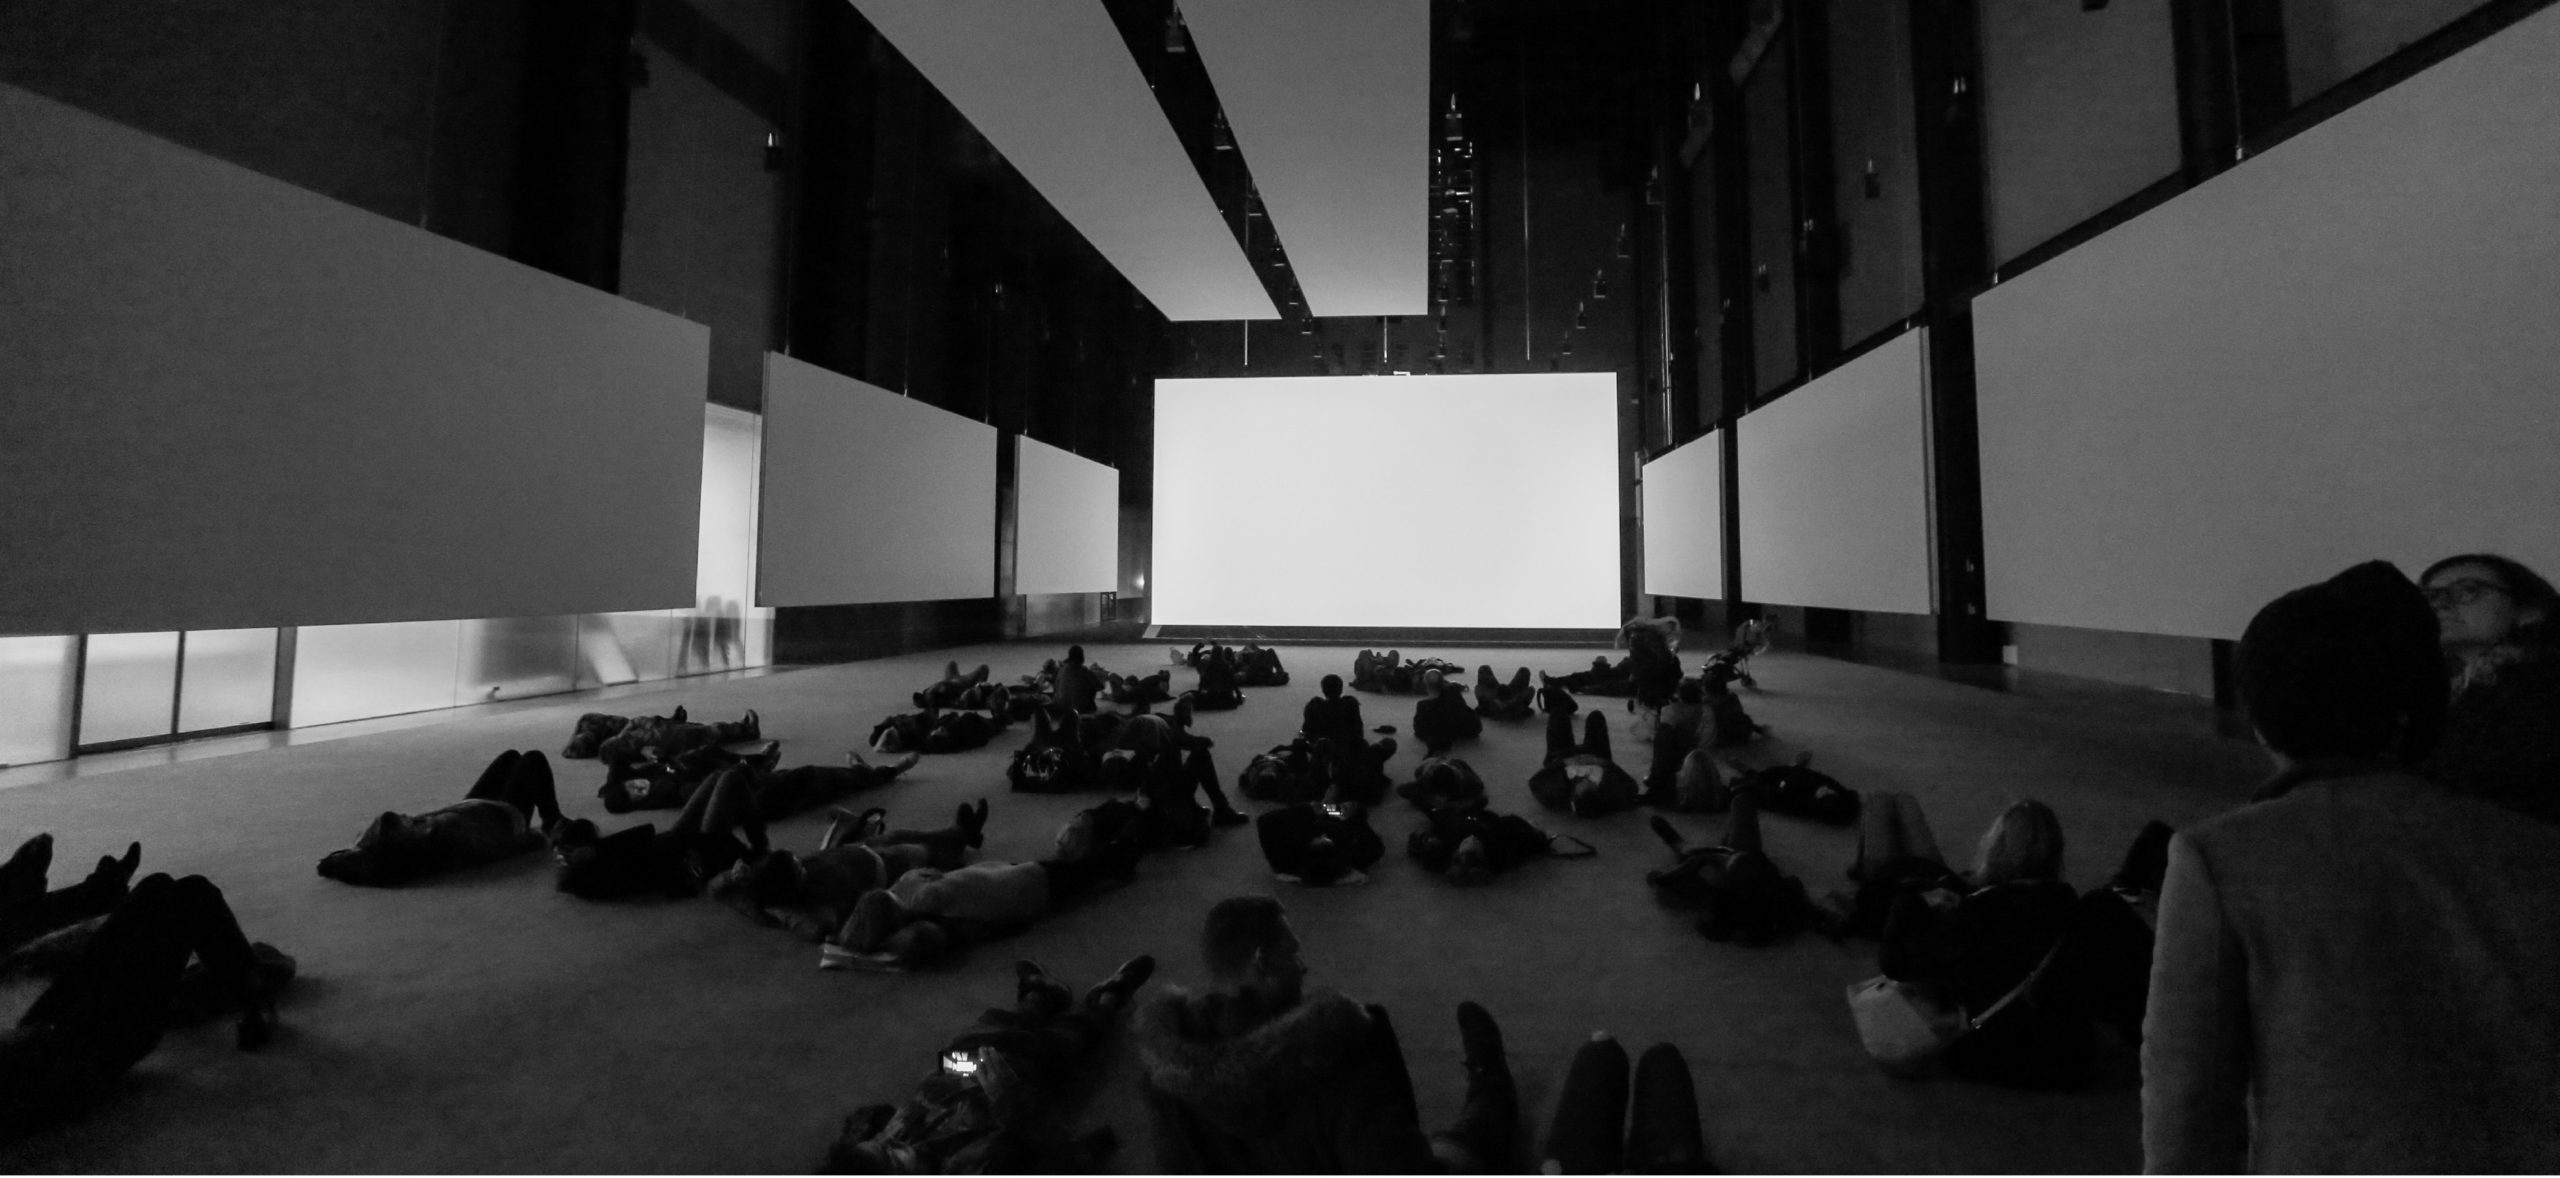 Group of people lying down in a room before a massive blank screen